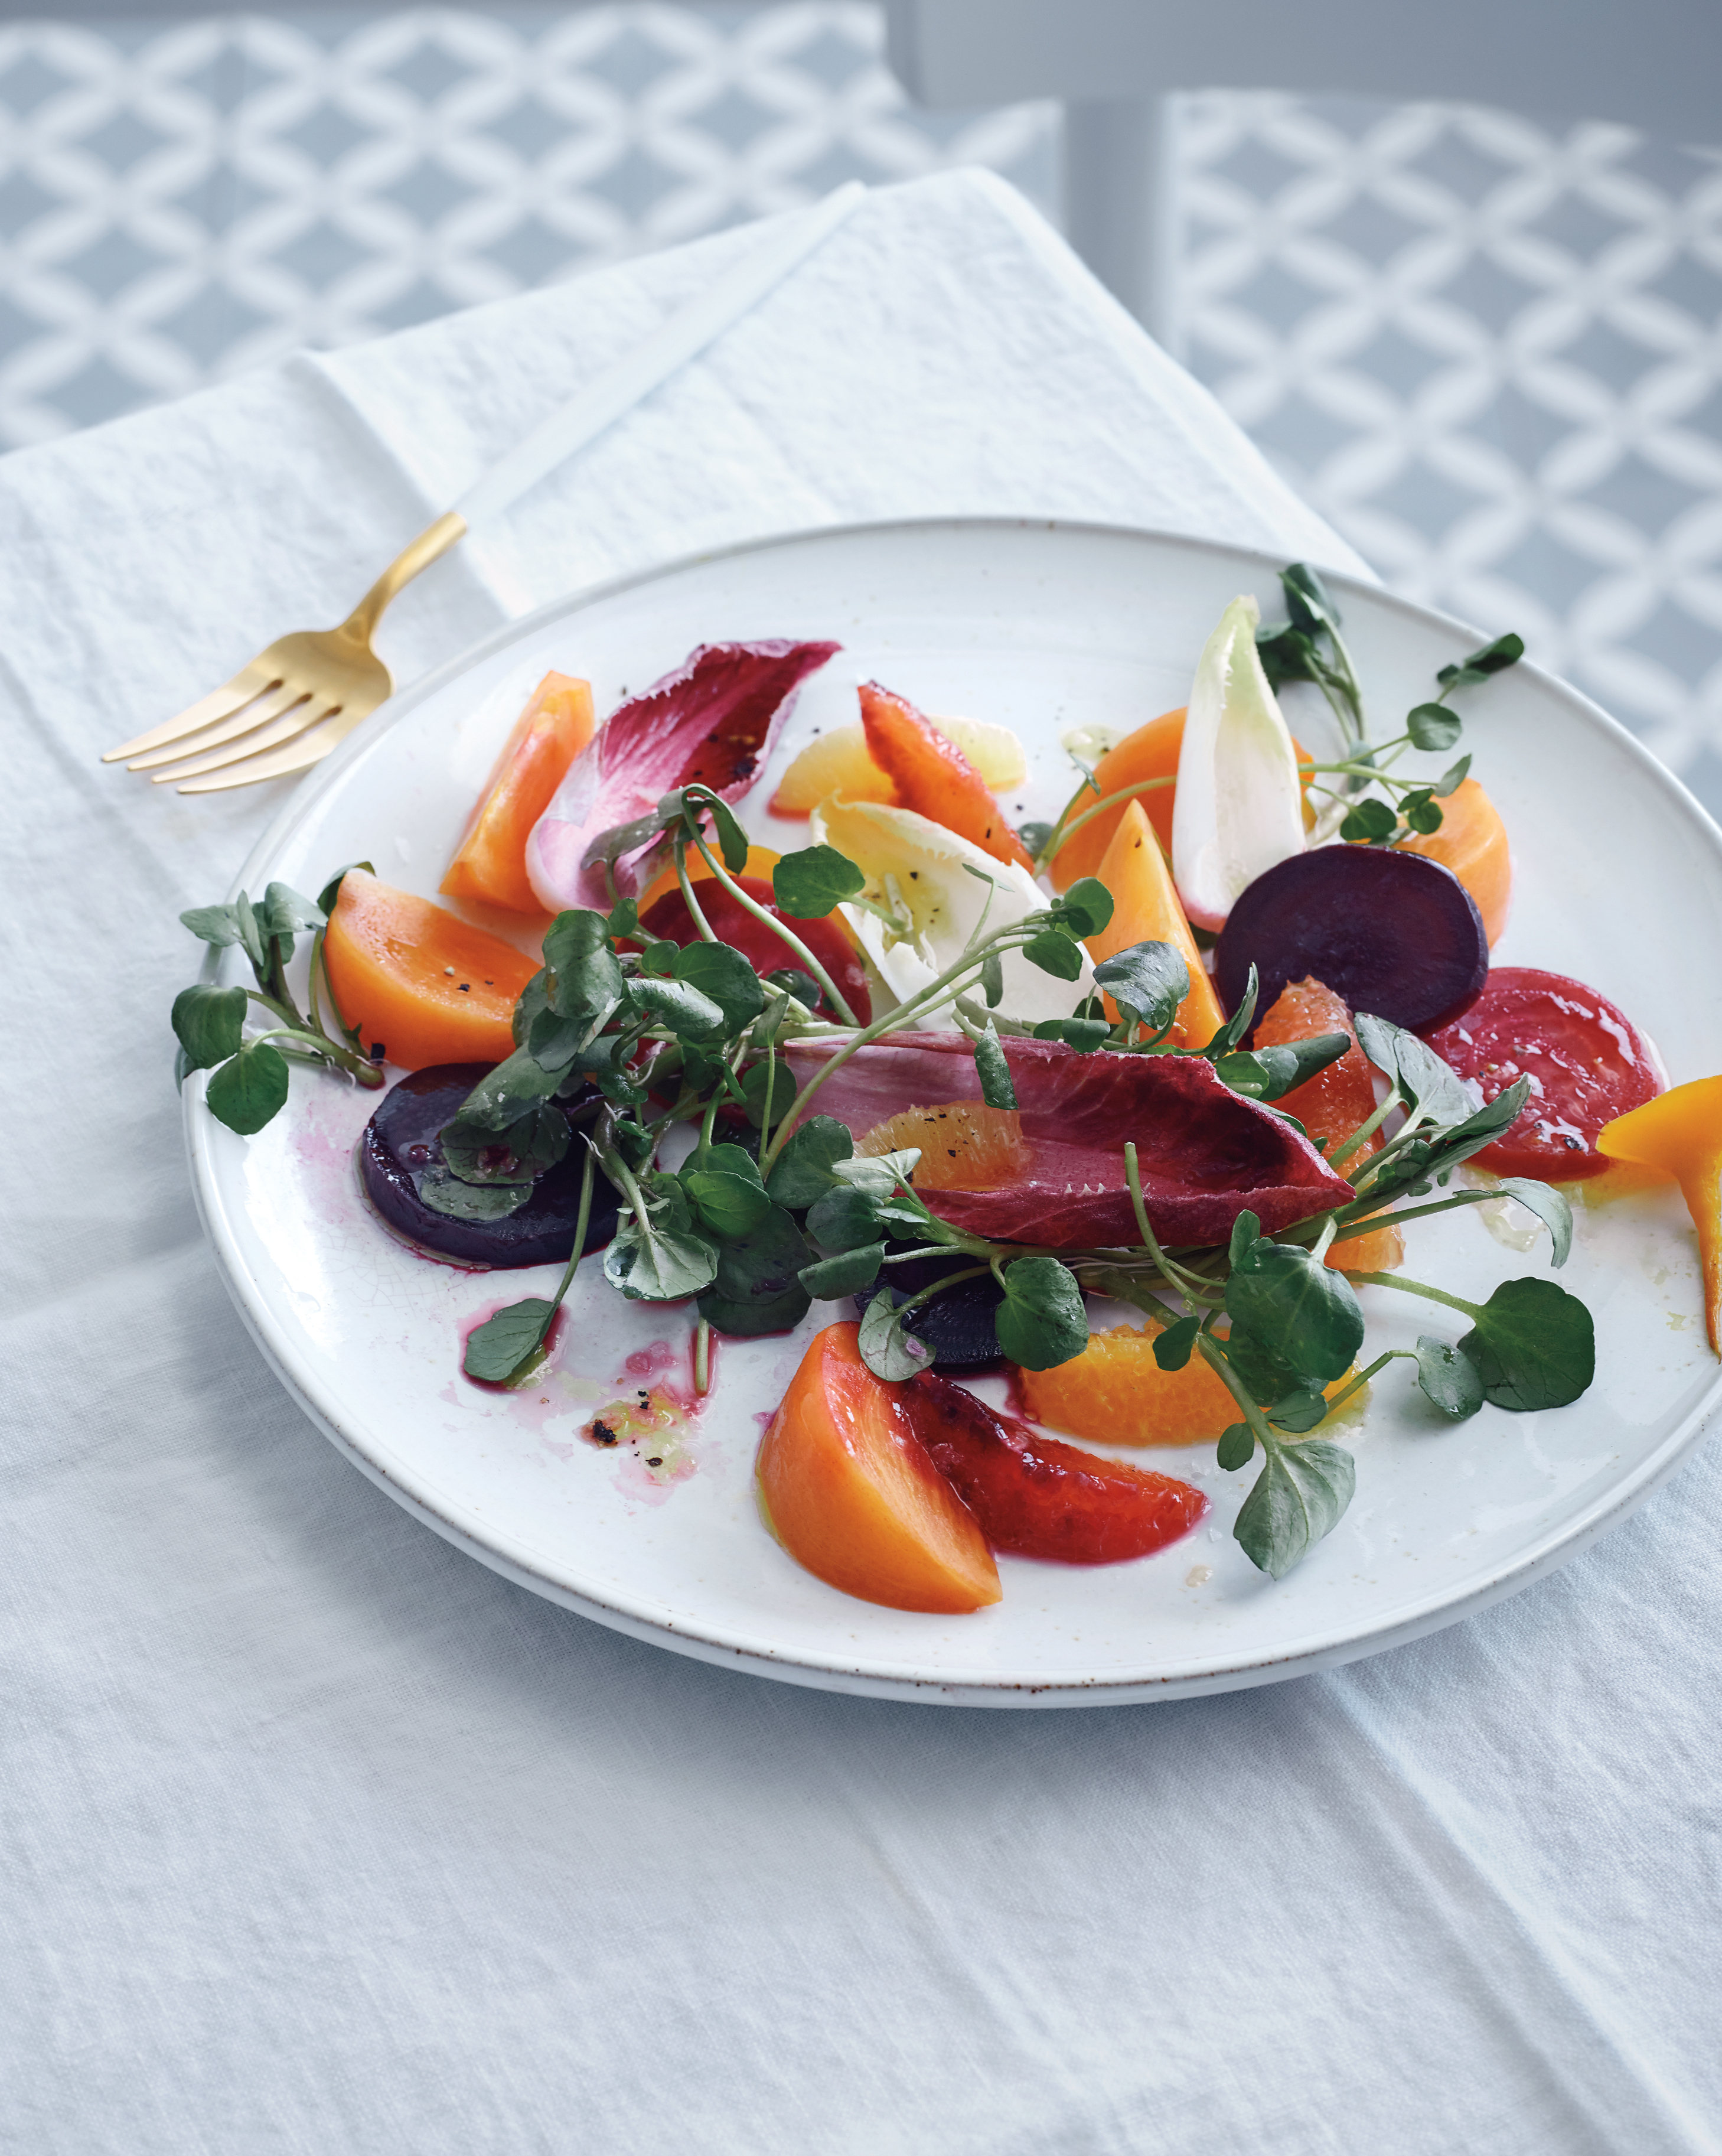 Persimmon, Beet, and Citrus Salad